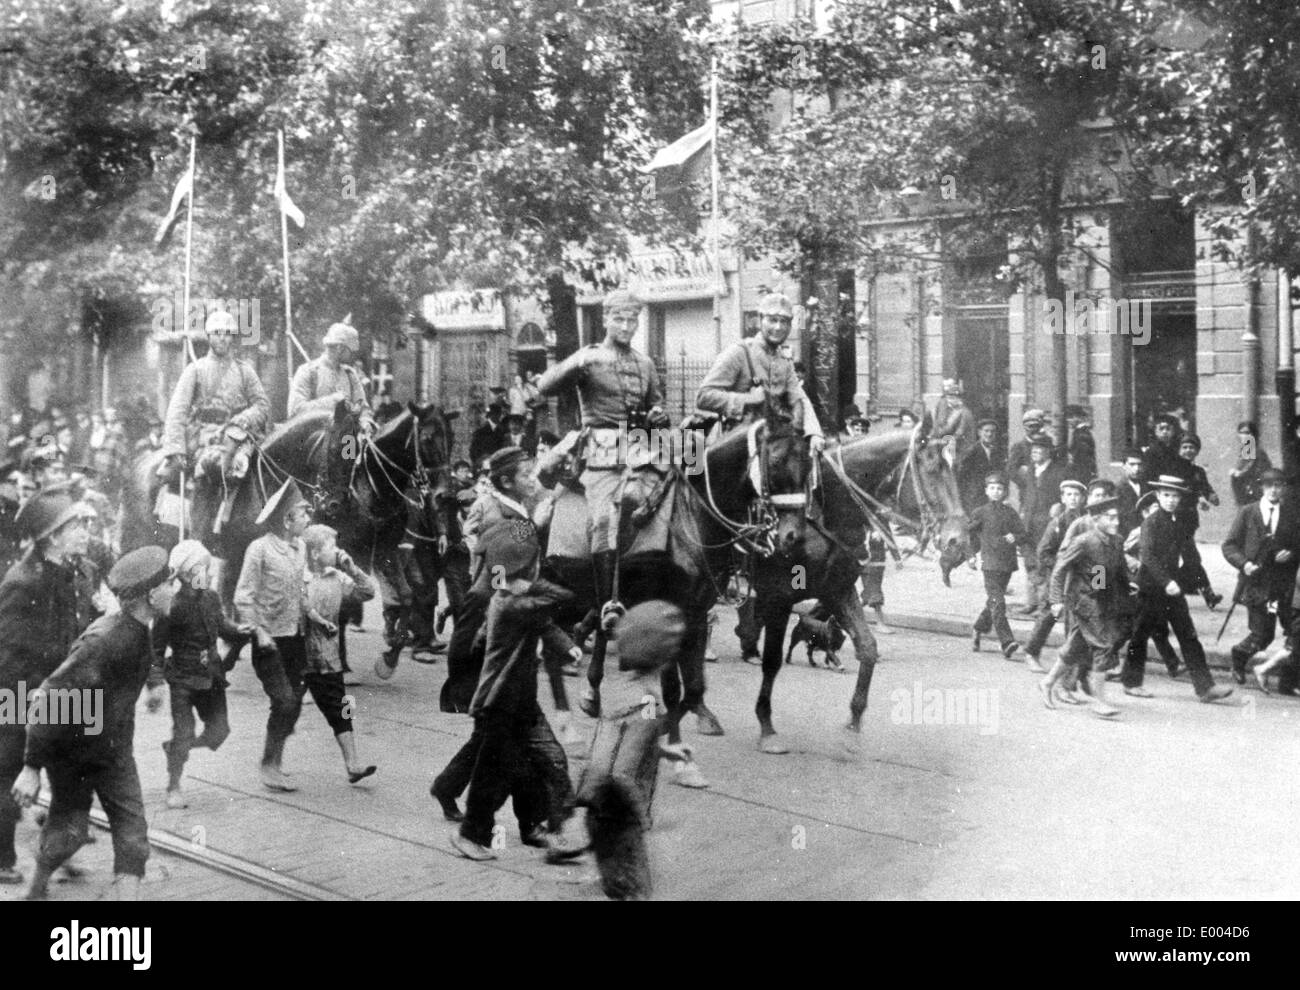 German Cavalry at the Eastern front, 1915 - Stock Image